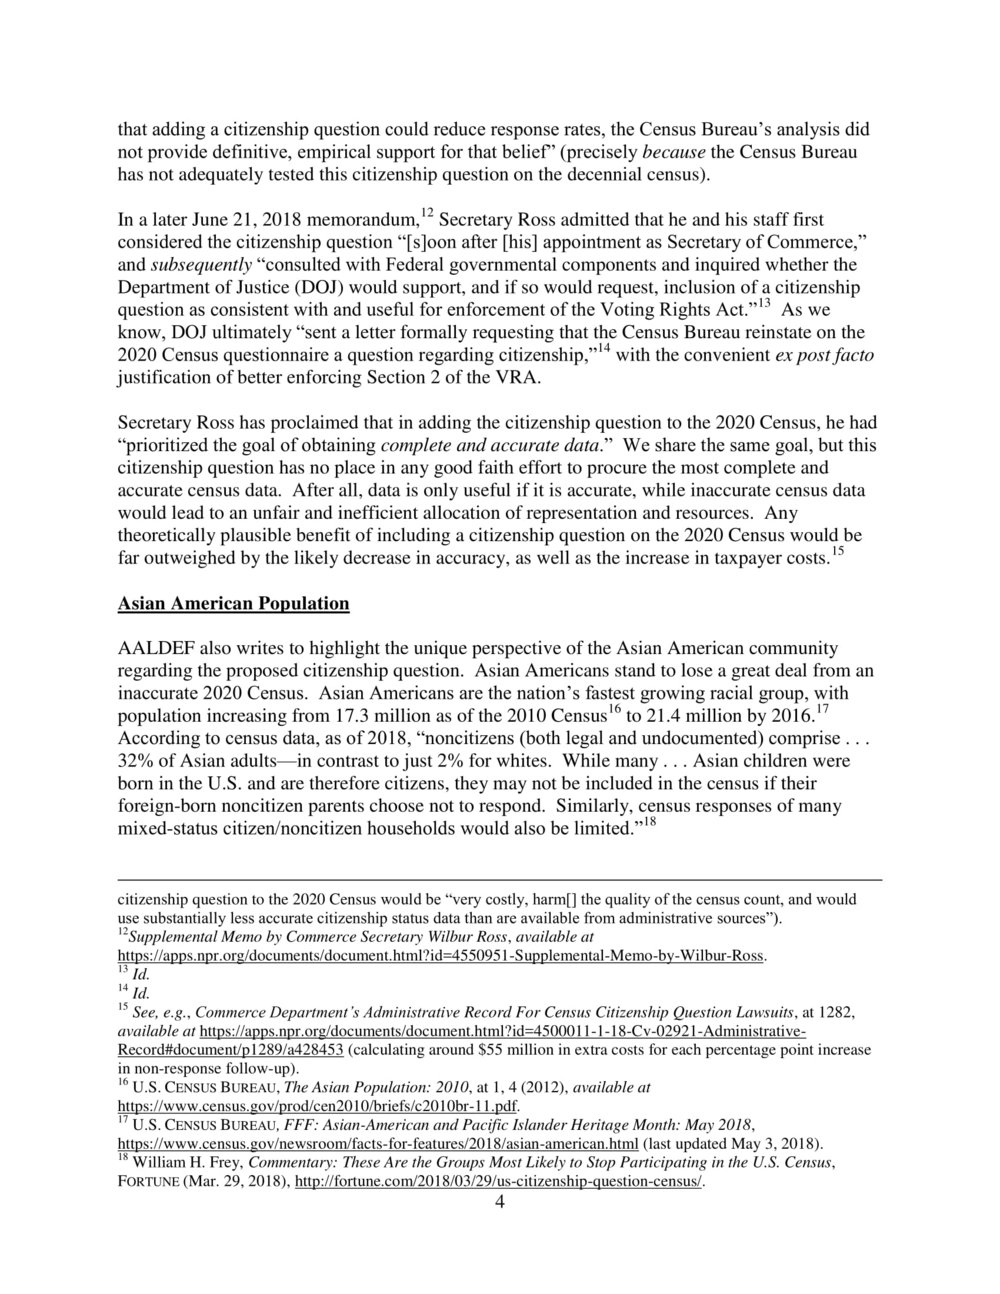 AALDEF Census Citizenship Question Public Comment-4.jpg